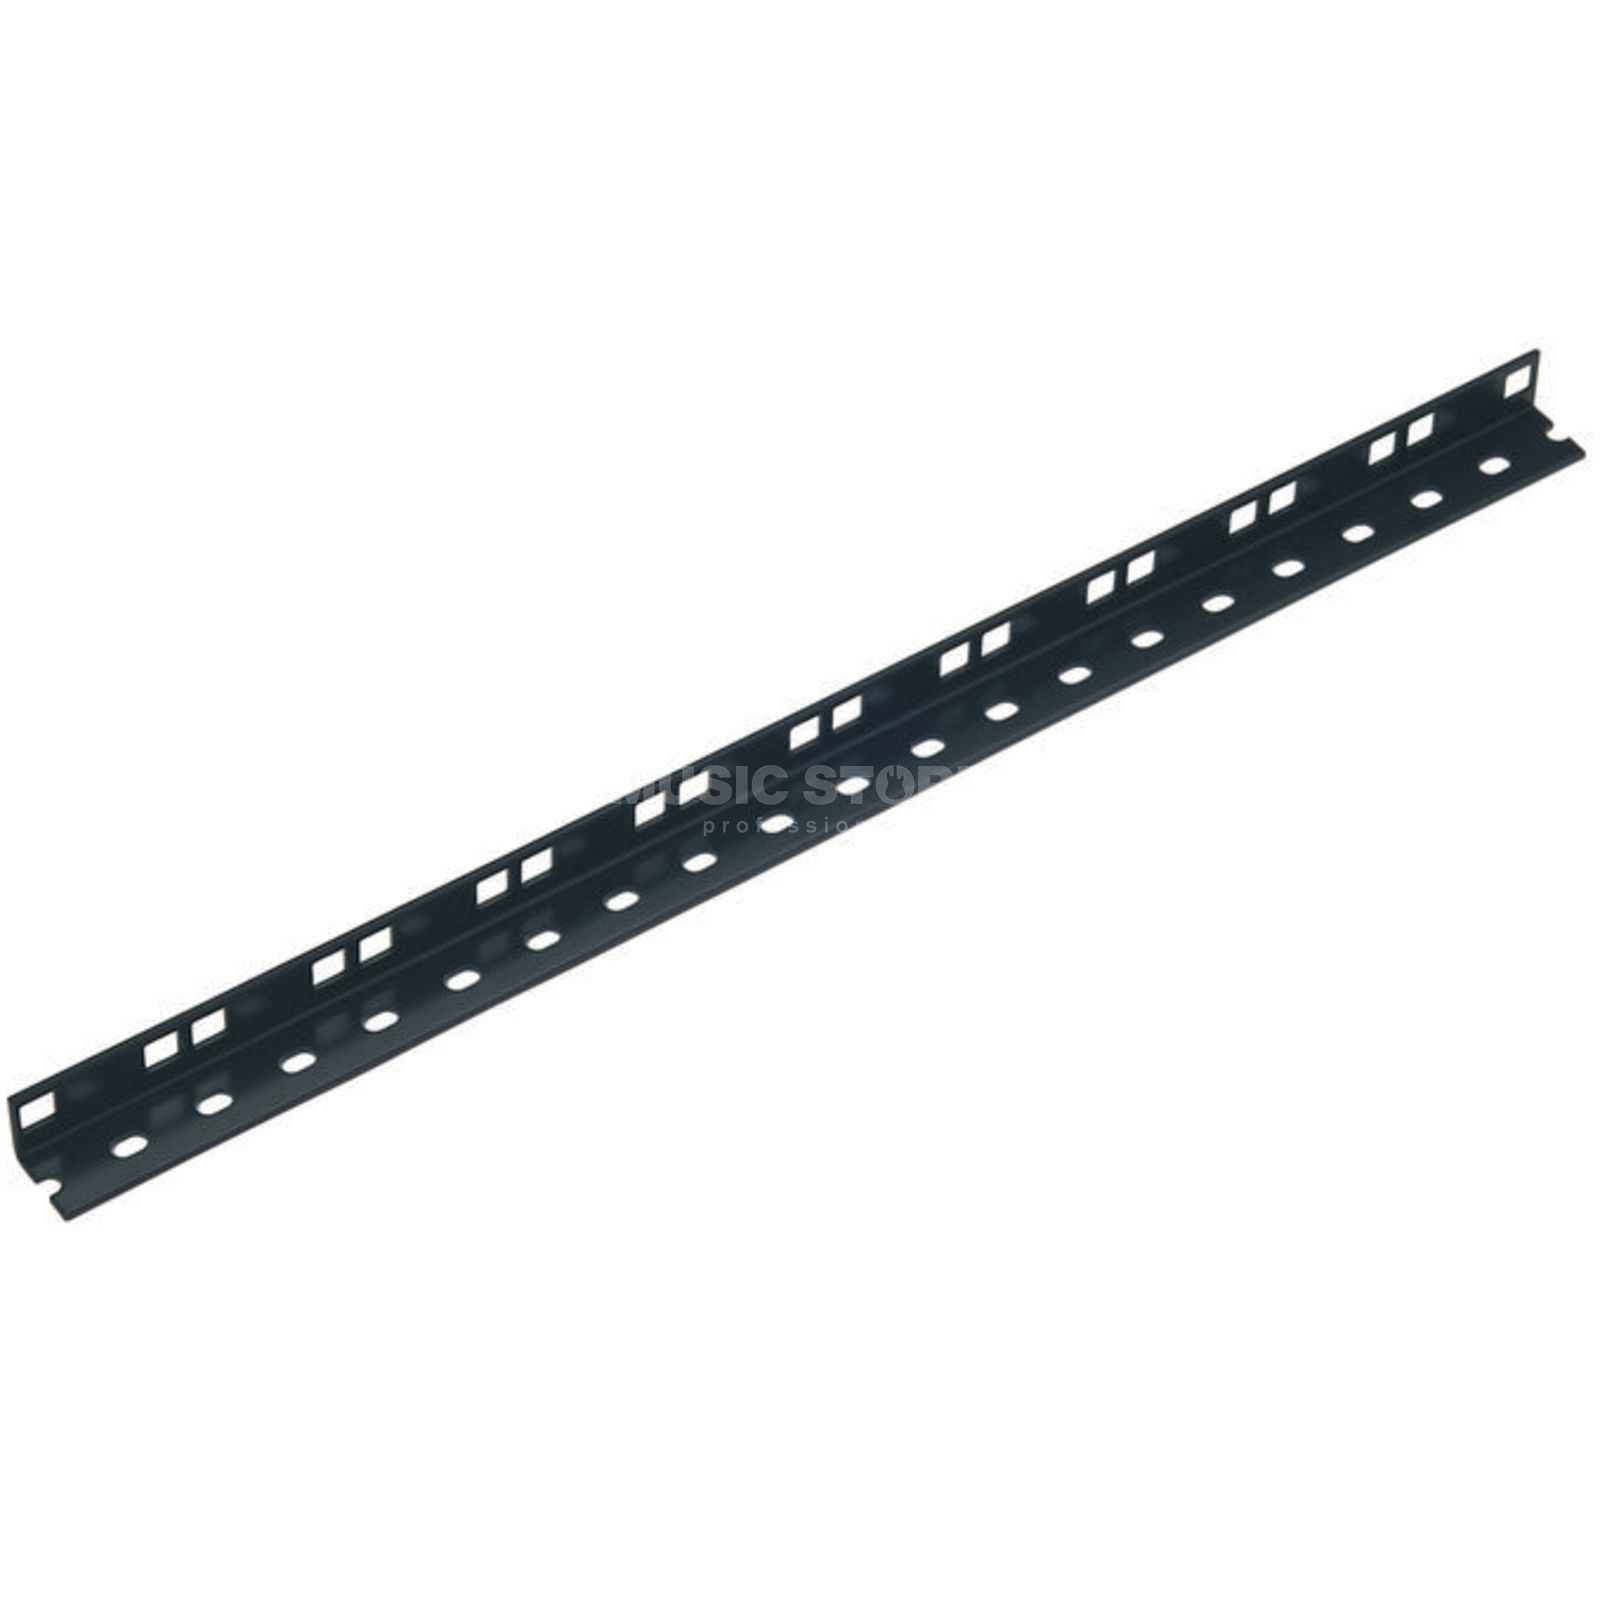 König & Meyer 10u Rack Rails 10U, Steel, black Produktbillede